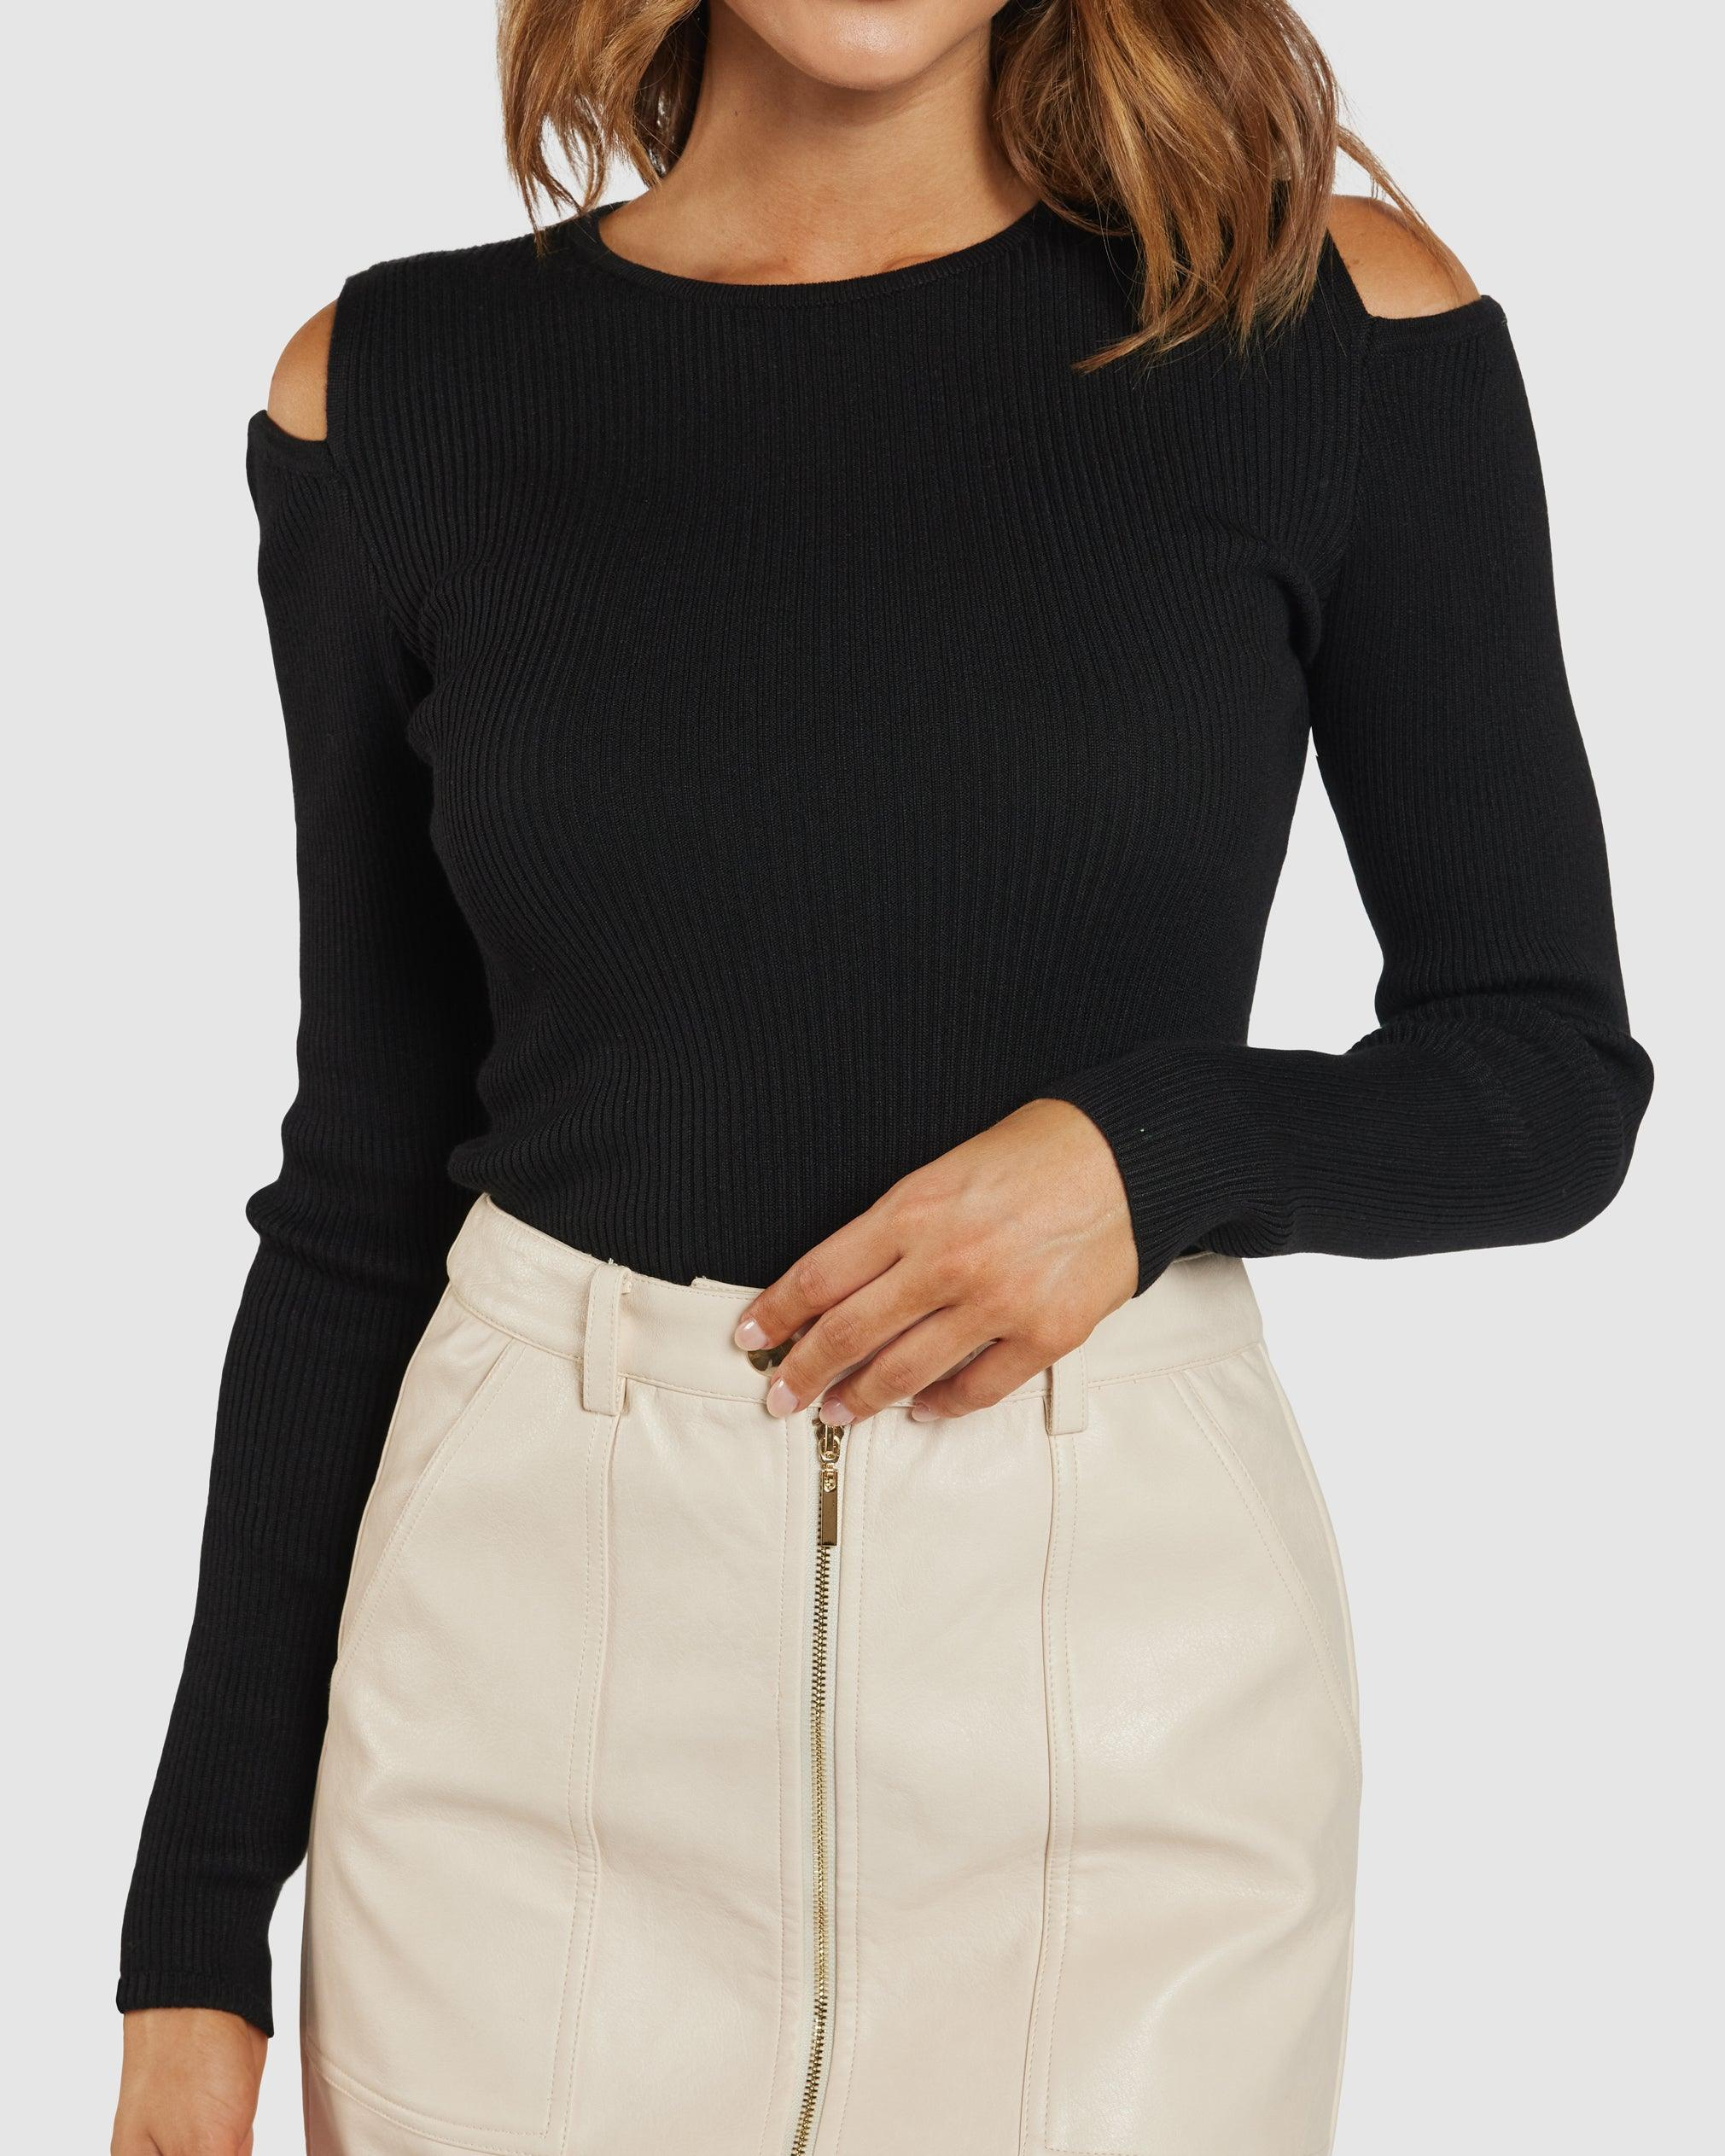 Rubi Ribbed Knit Top - Black